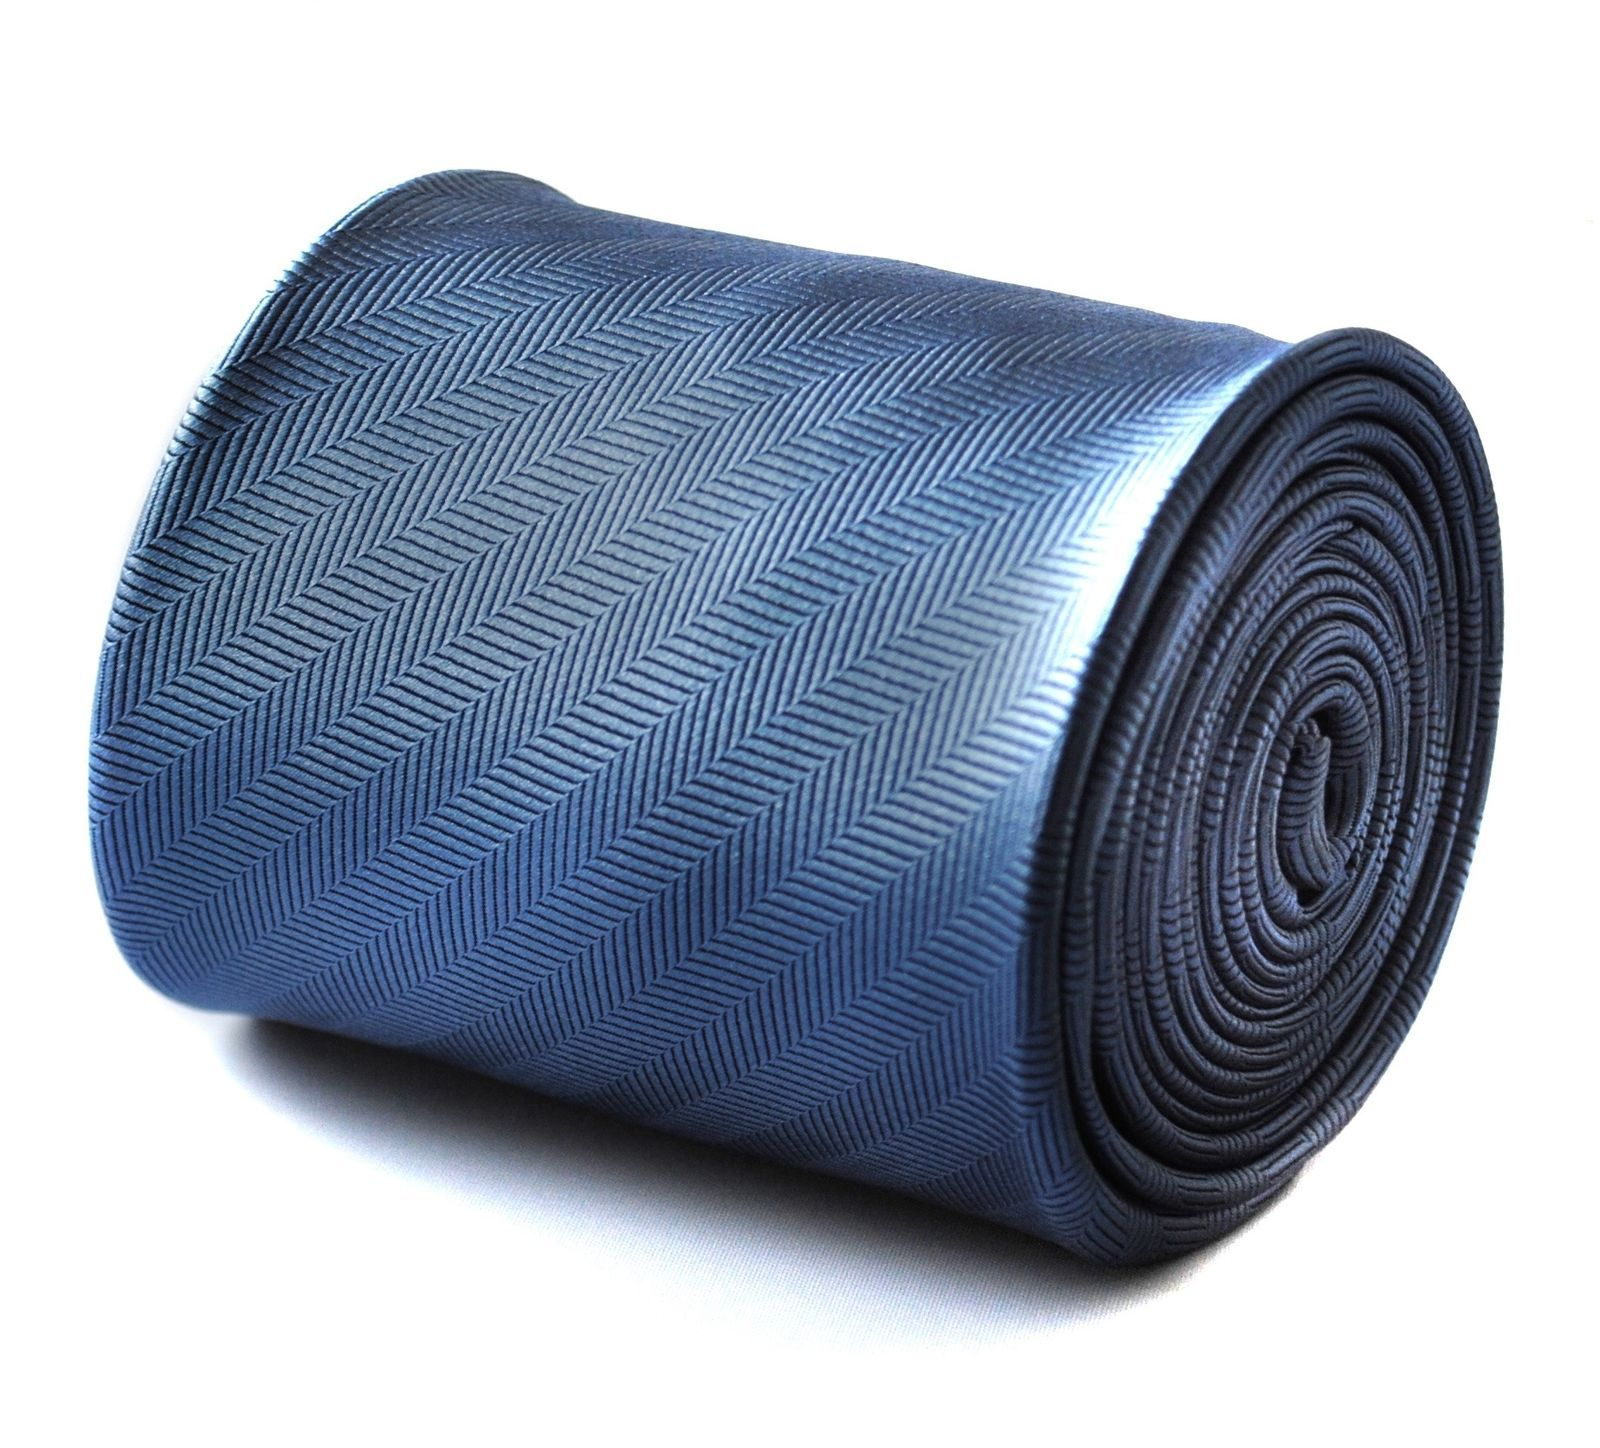 Frederick Thomas plain blue tie with herringbone pattern